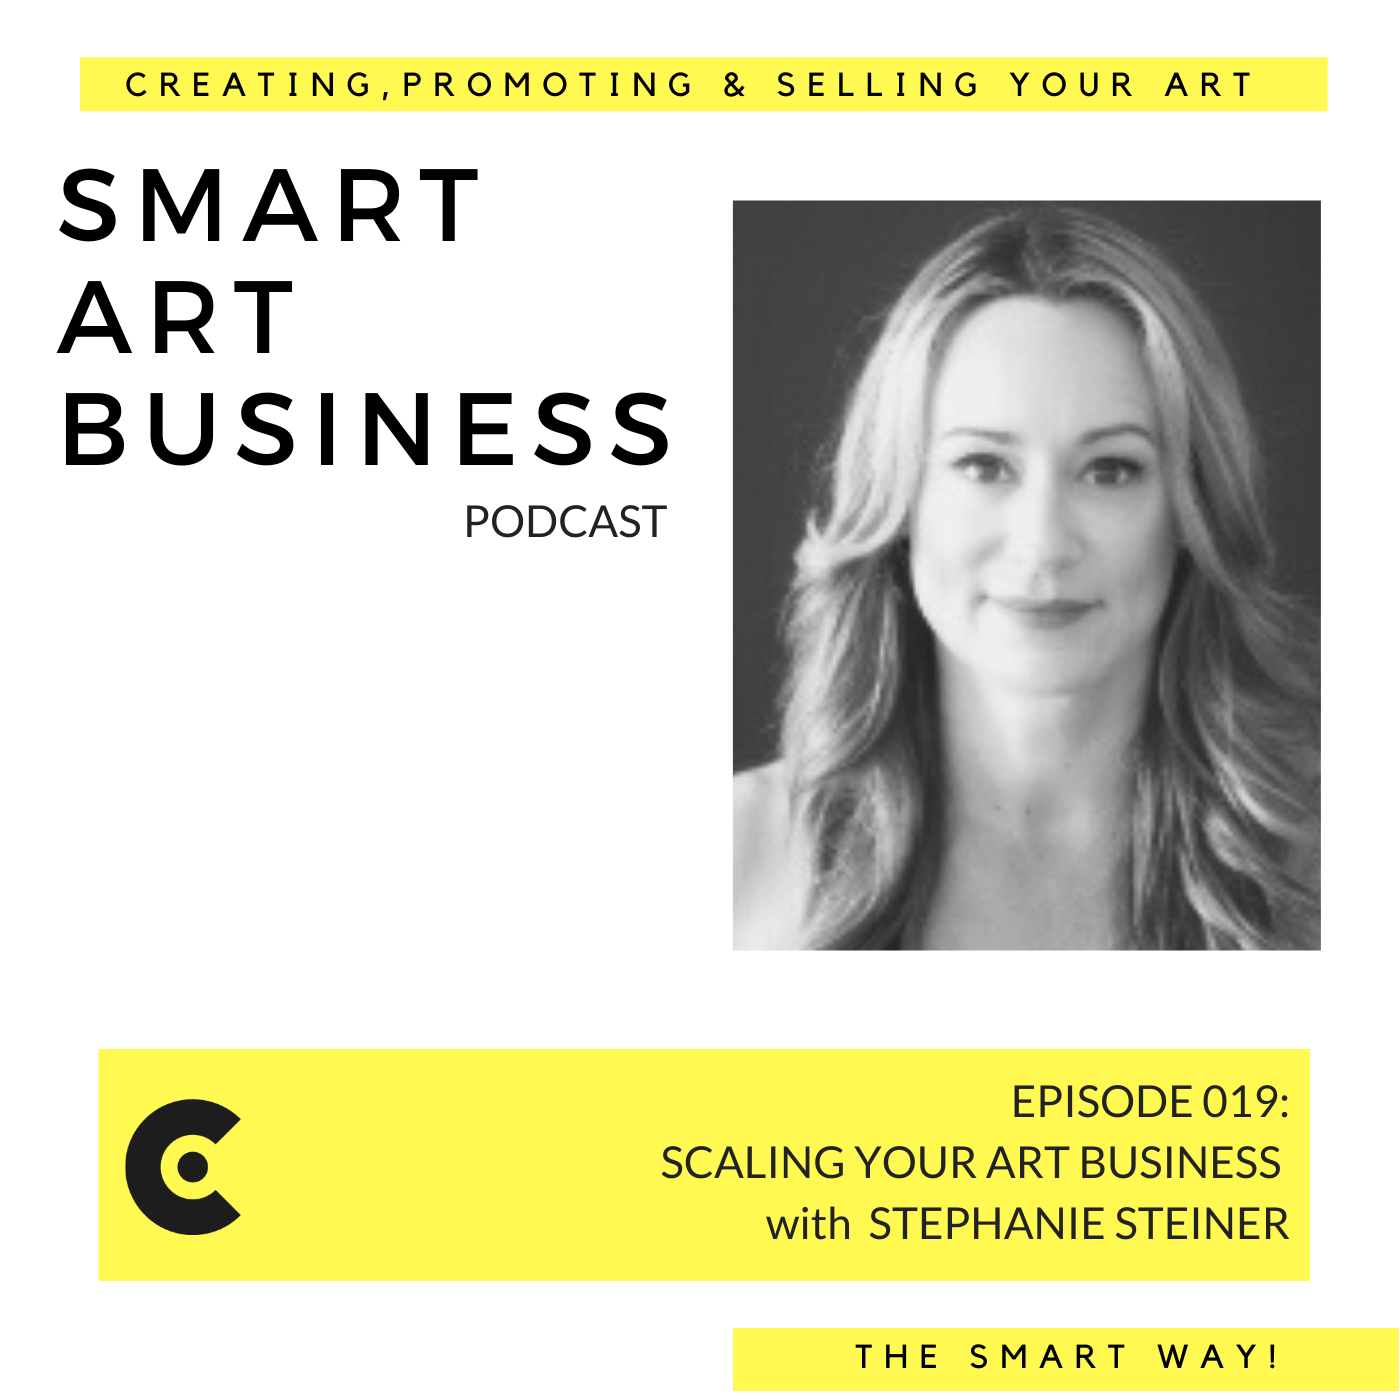 Scaling your Art Business with Stephanie Steiner